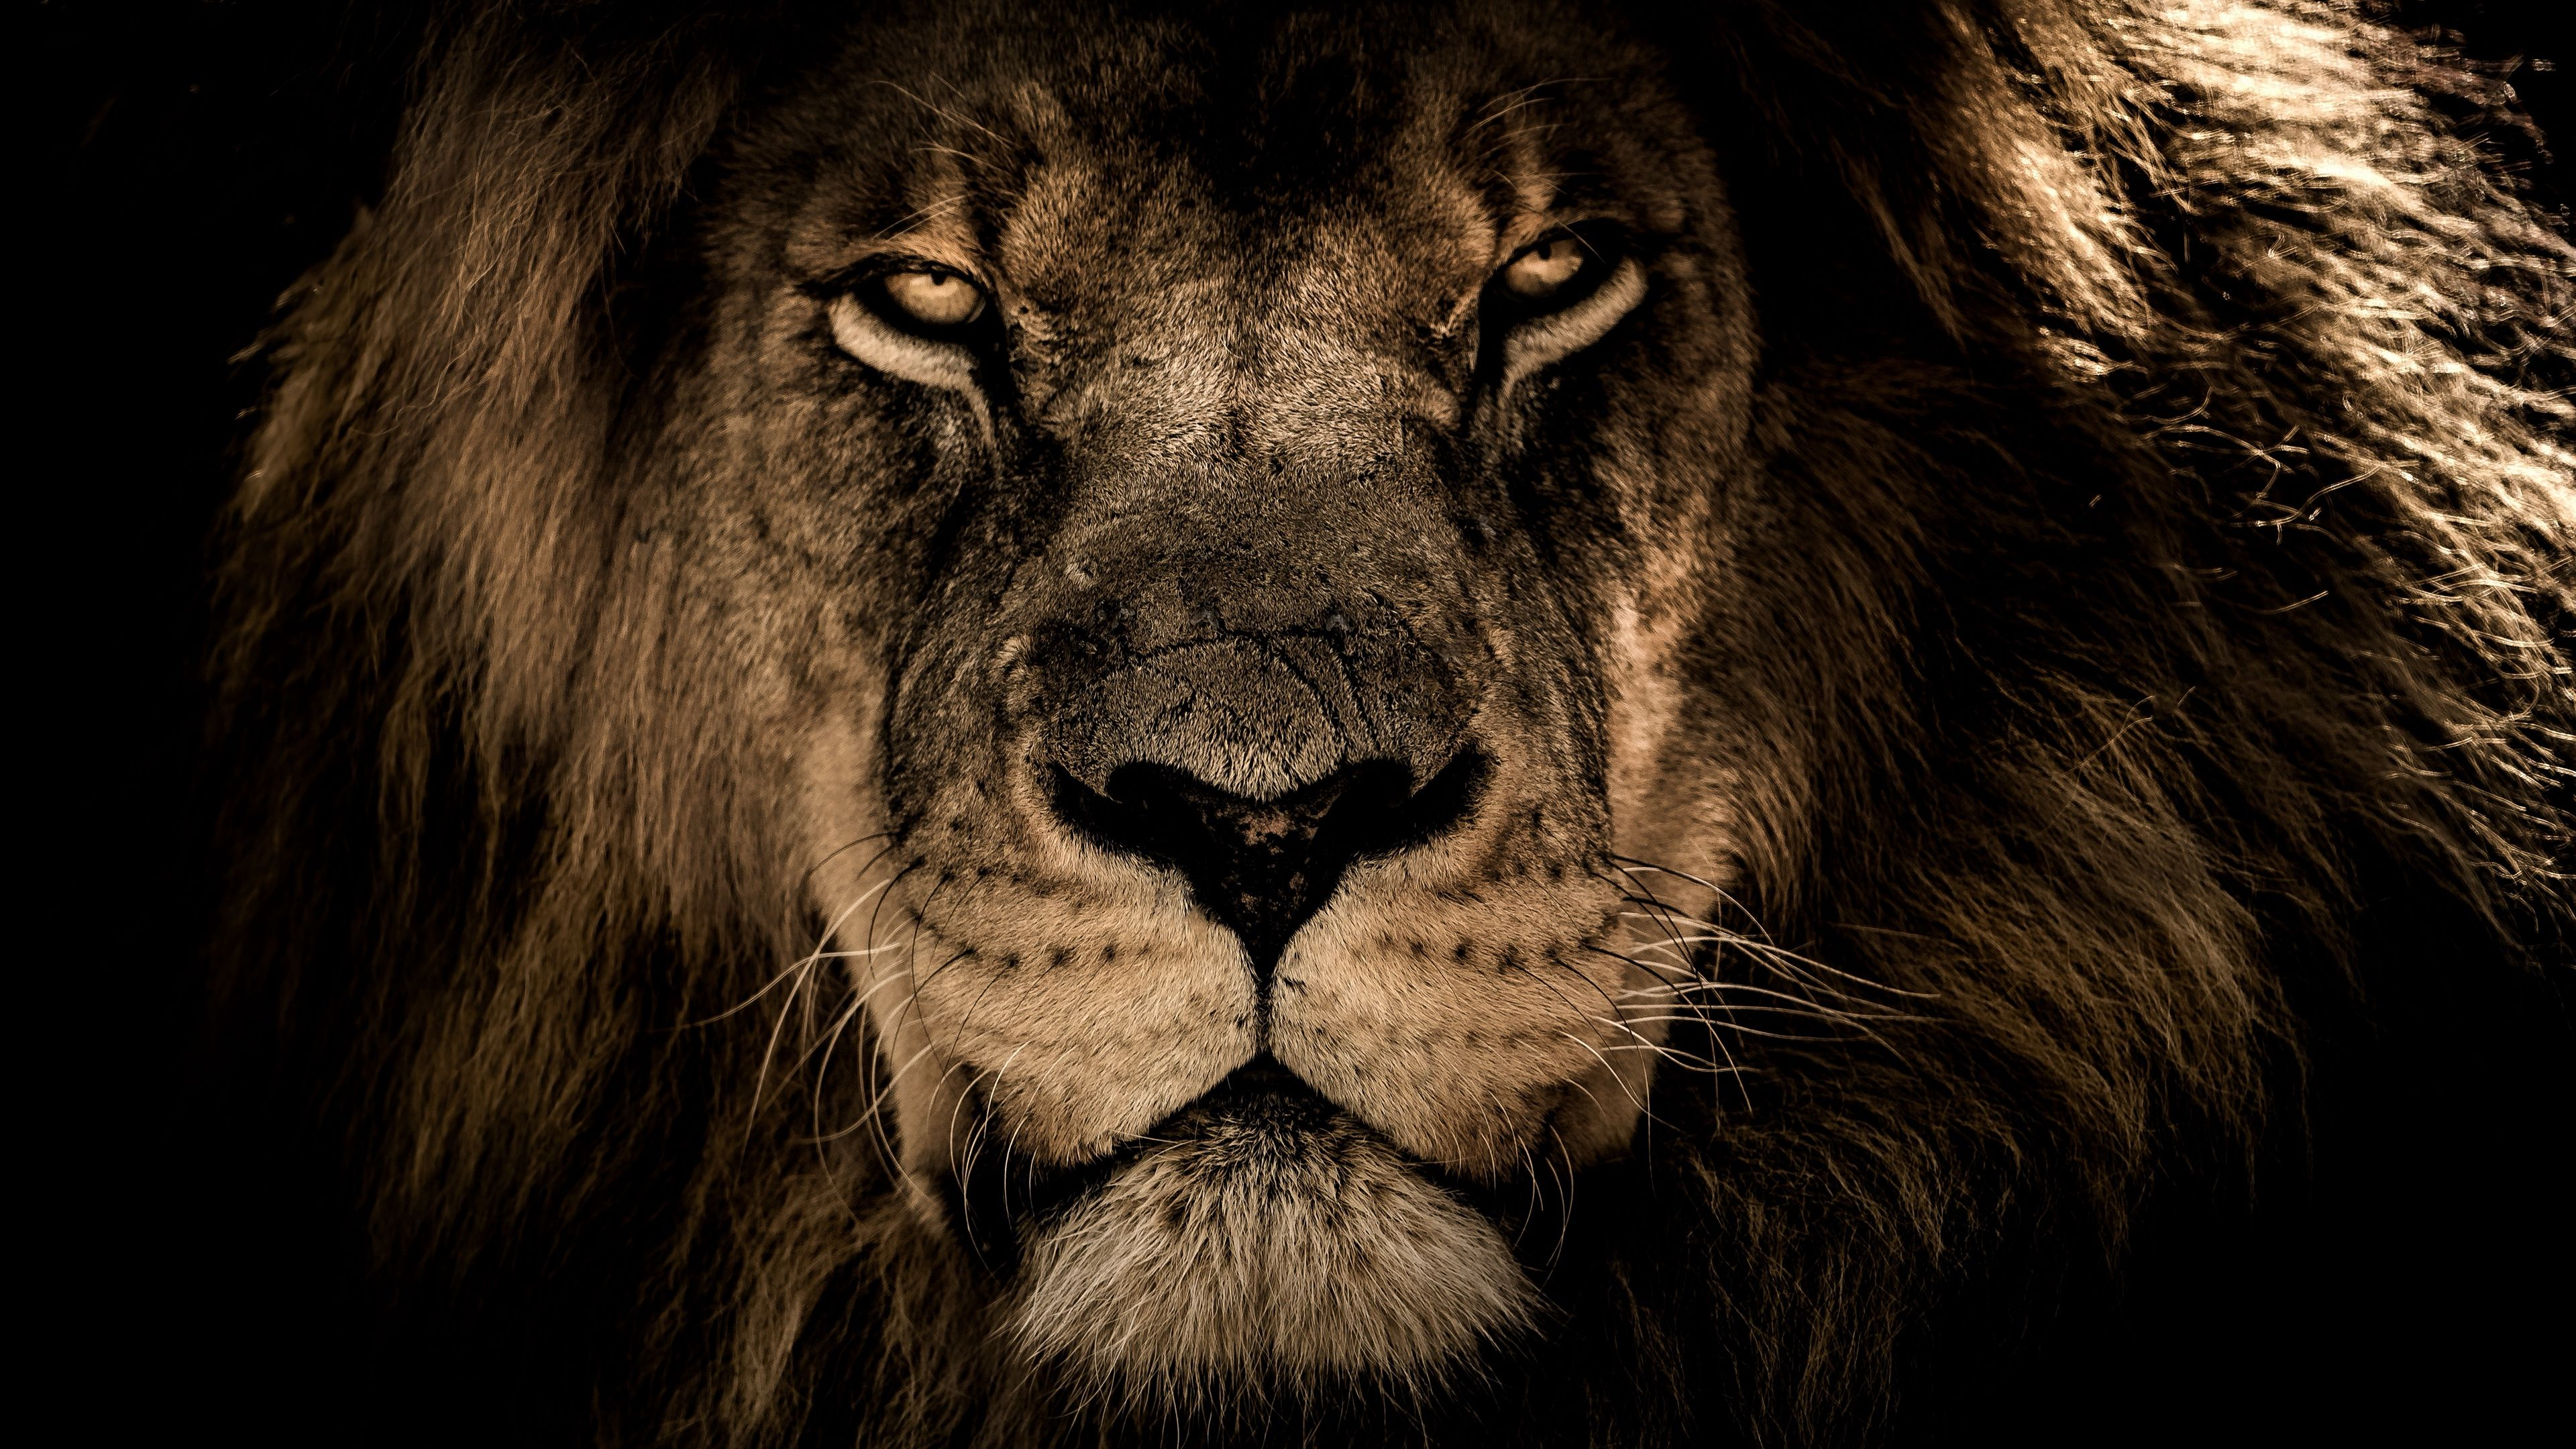 Lion Eyes Wallpapers Top Free Lion Eyes Backgrounds Wallpaperaccess